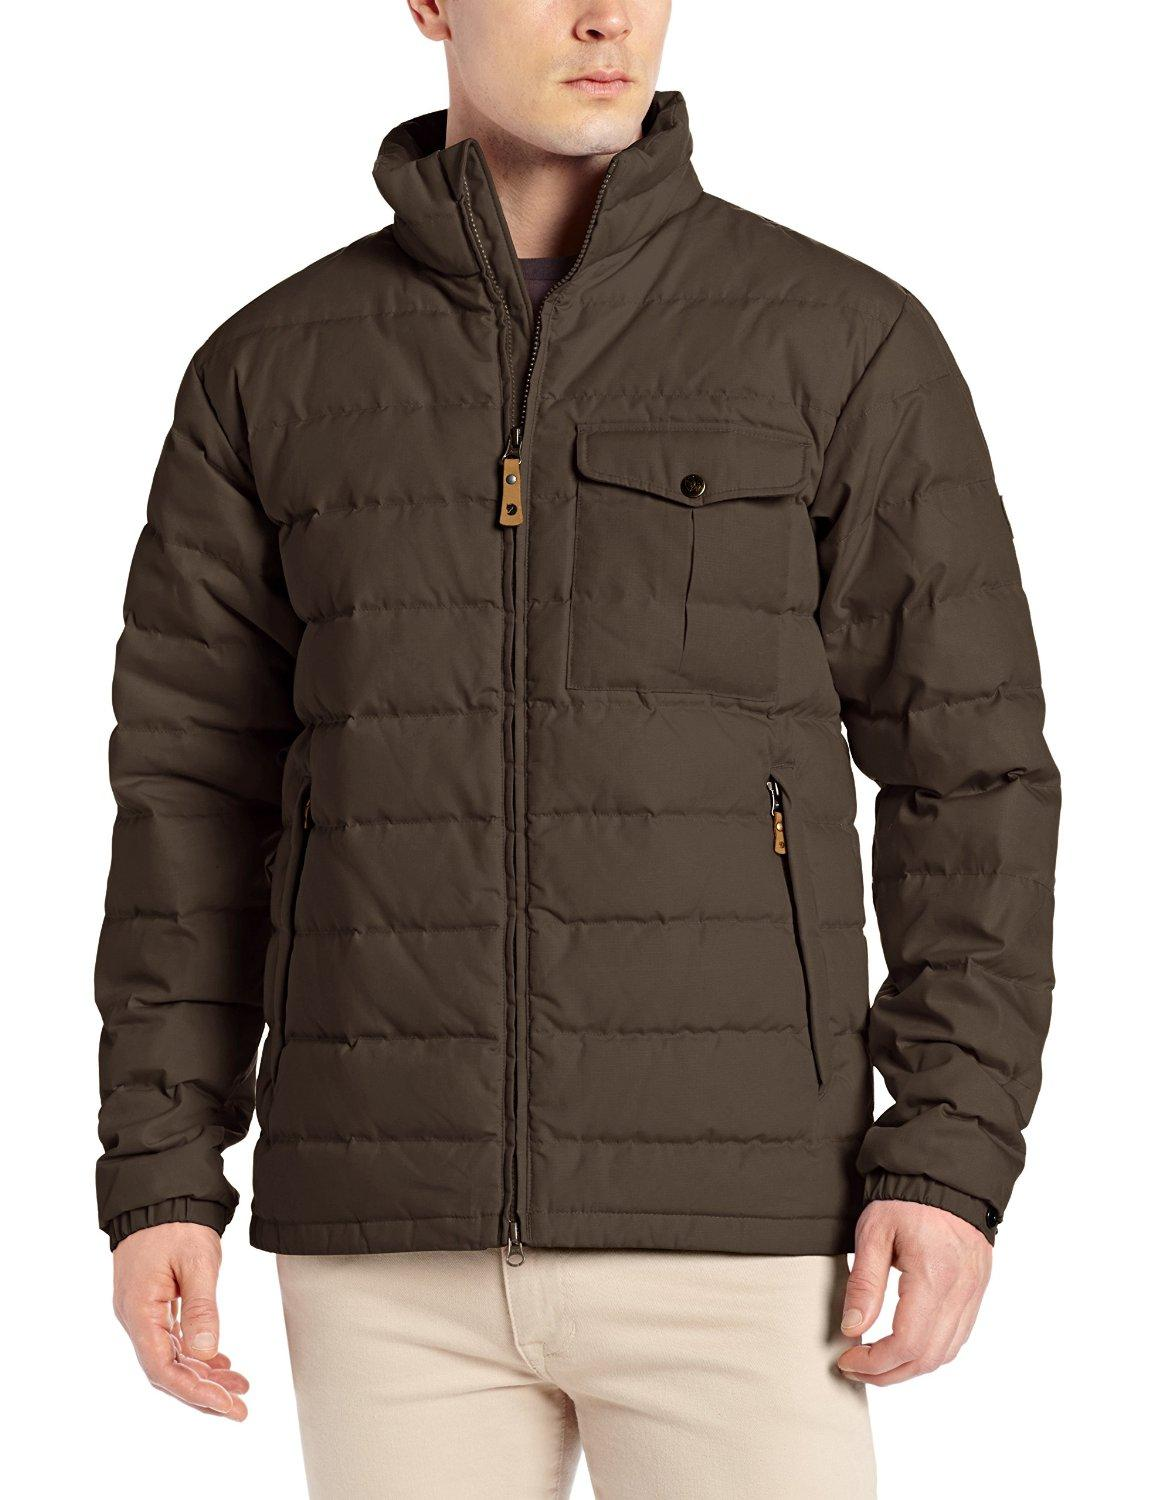 $180.00 Fjallraven Men's Ovik Lite Jacket